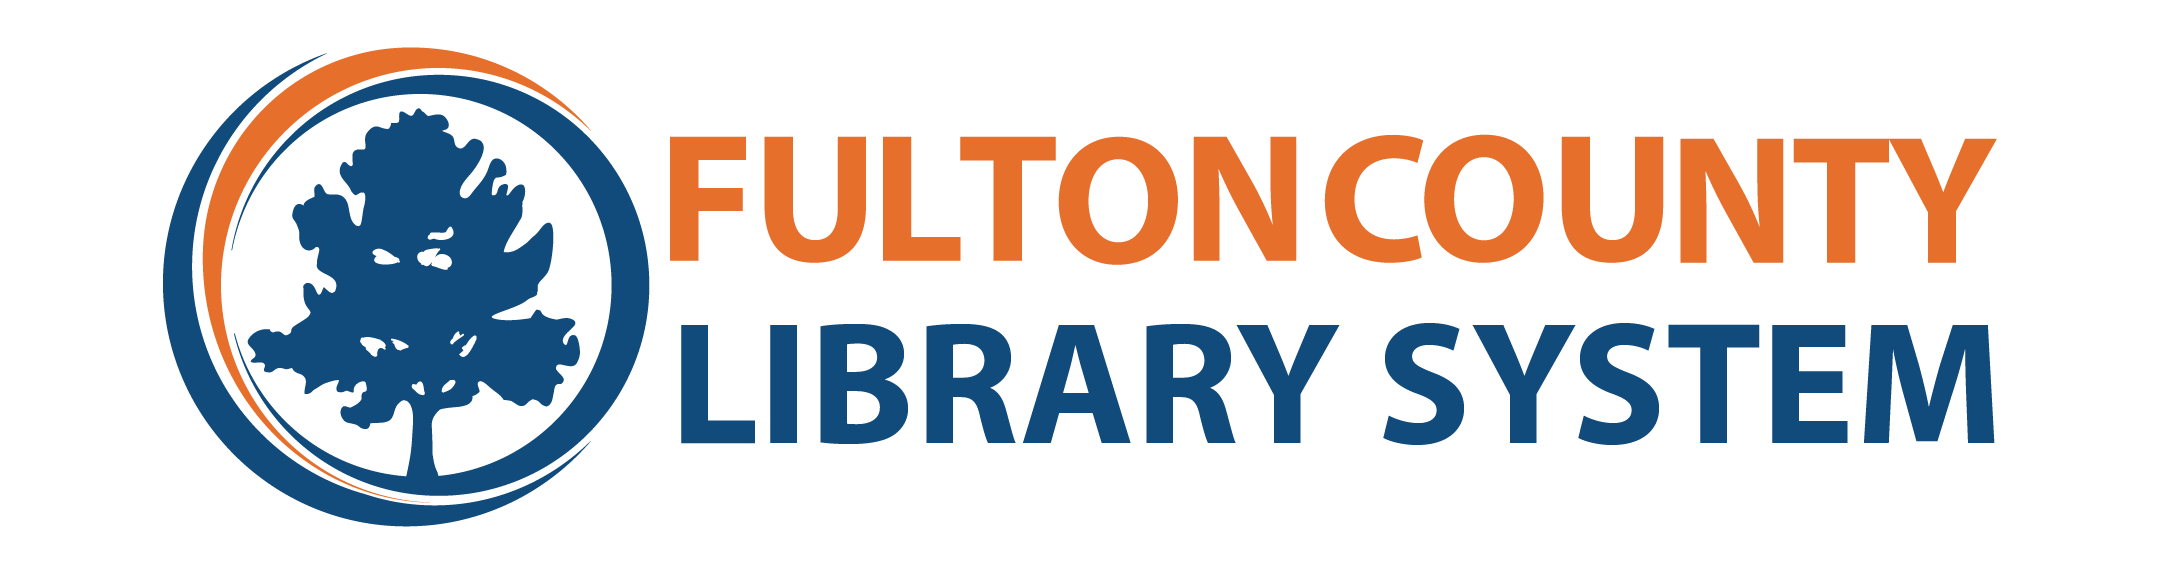 Fulton County Library System: Ask a Librarian! banner